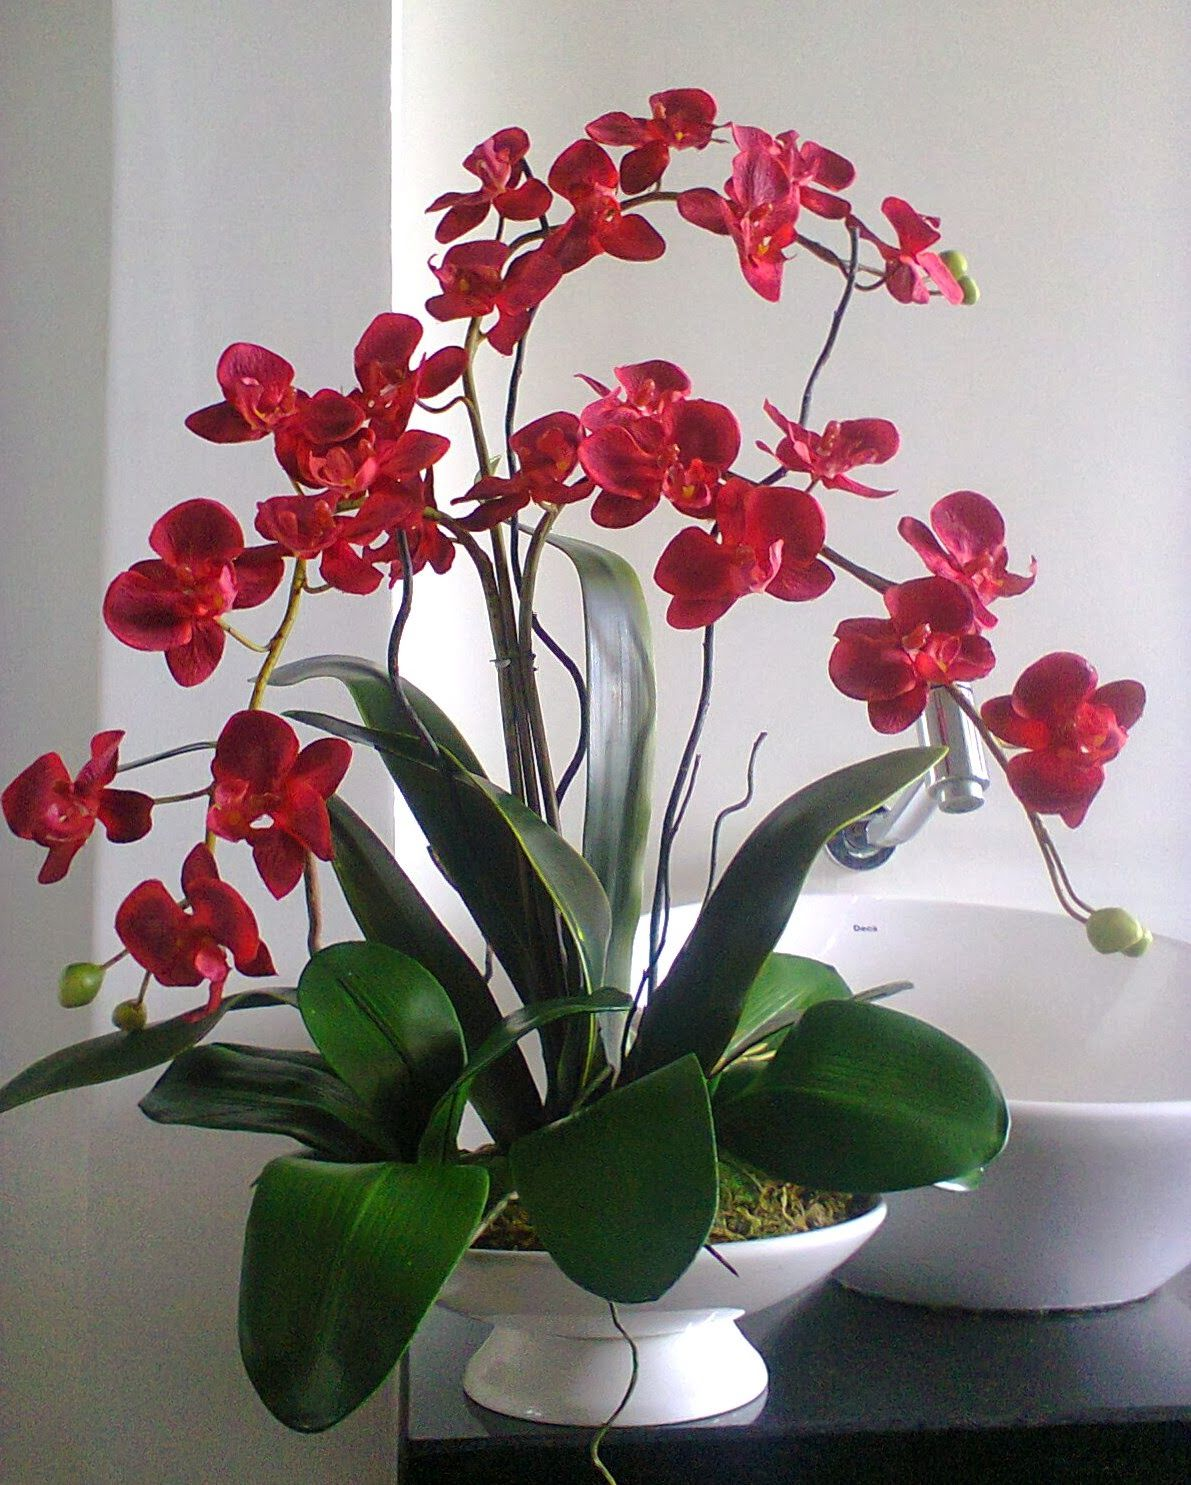 Pin by marilou chu on orchid pinterest orchid flowers and plants